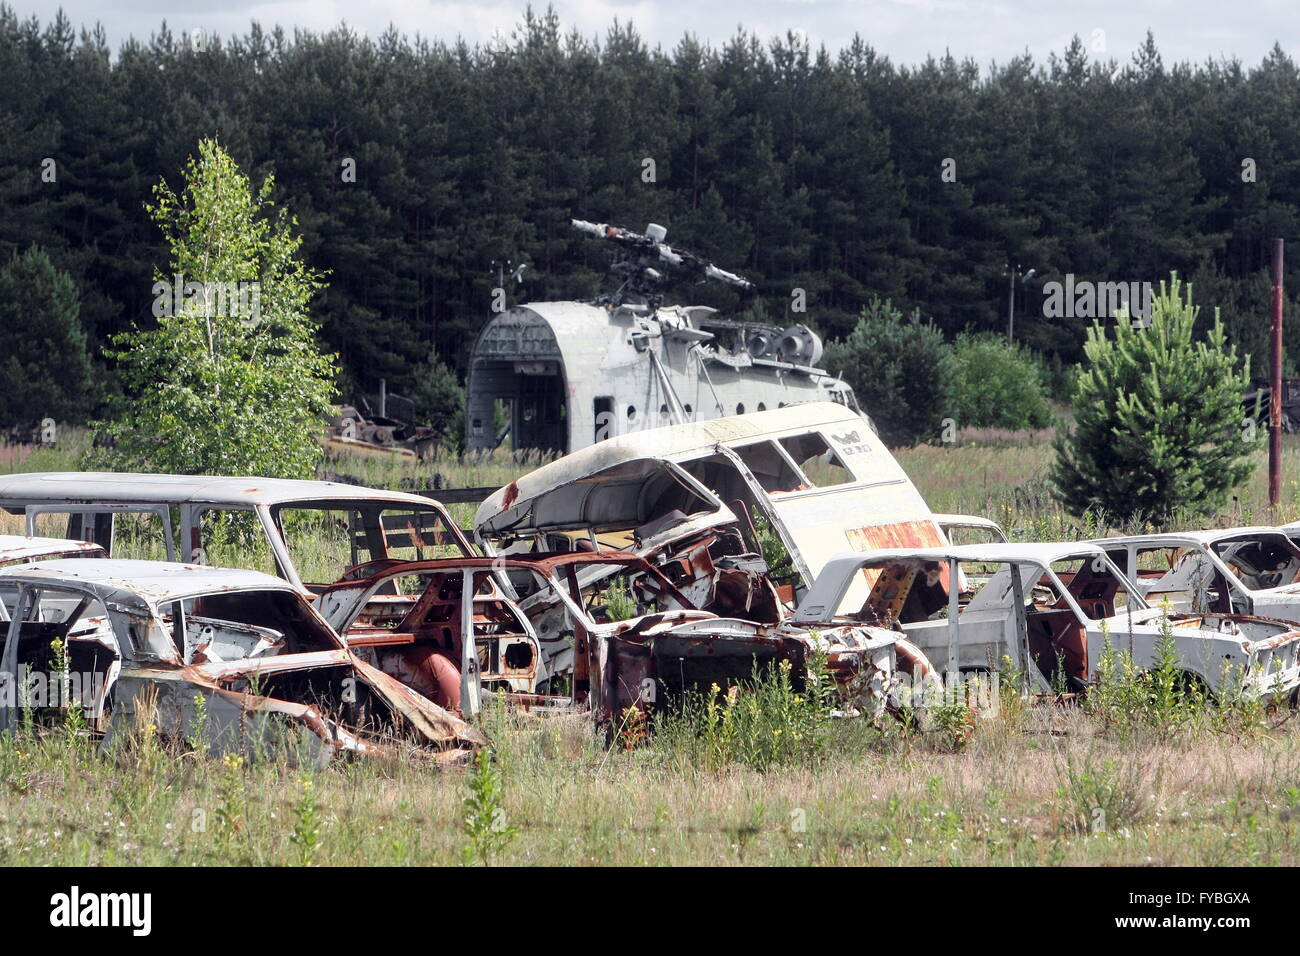 CHERNOBYL, UKRAINE. Pictured in this file image is equipment used in a clean-up operation following the Chernobyl - Stock Image